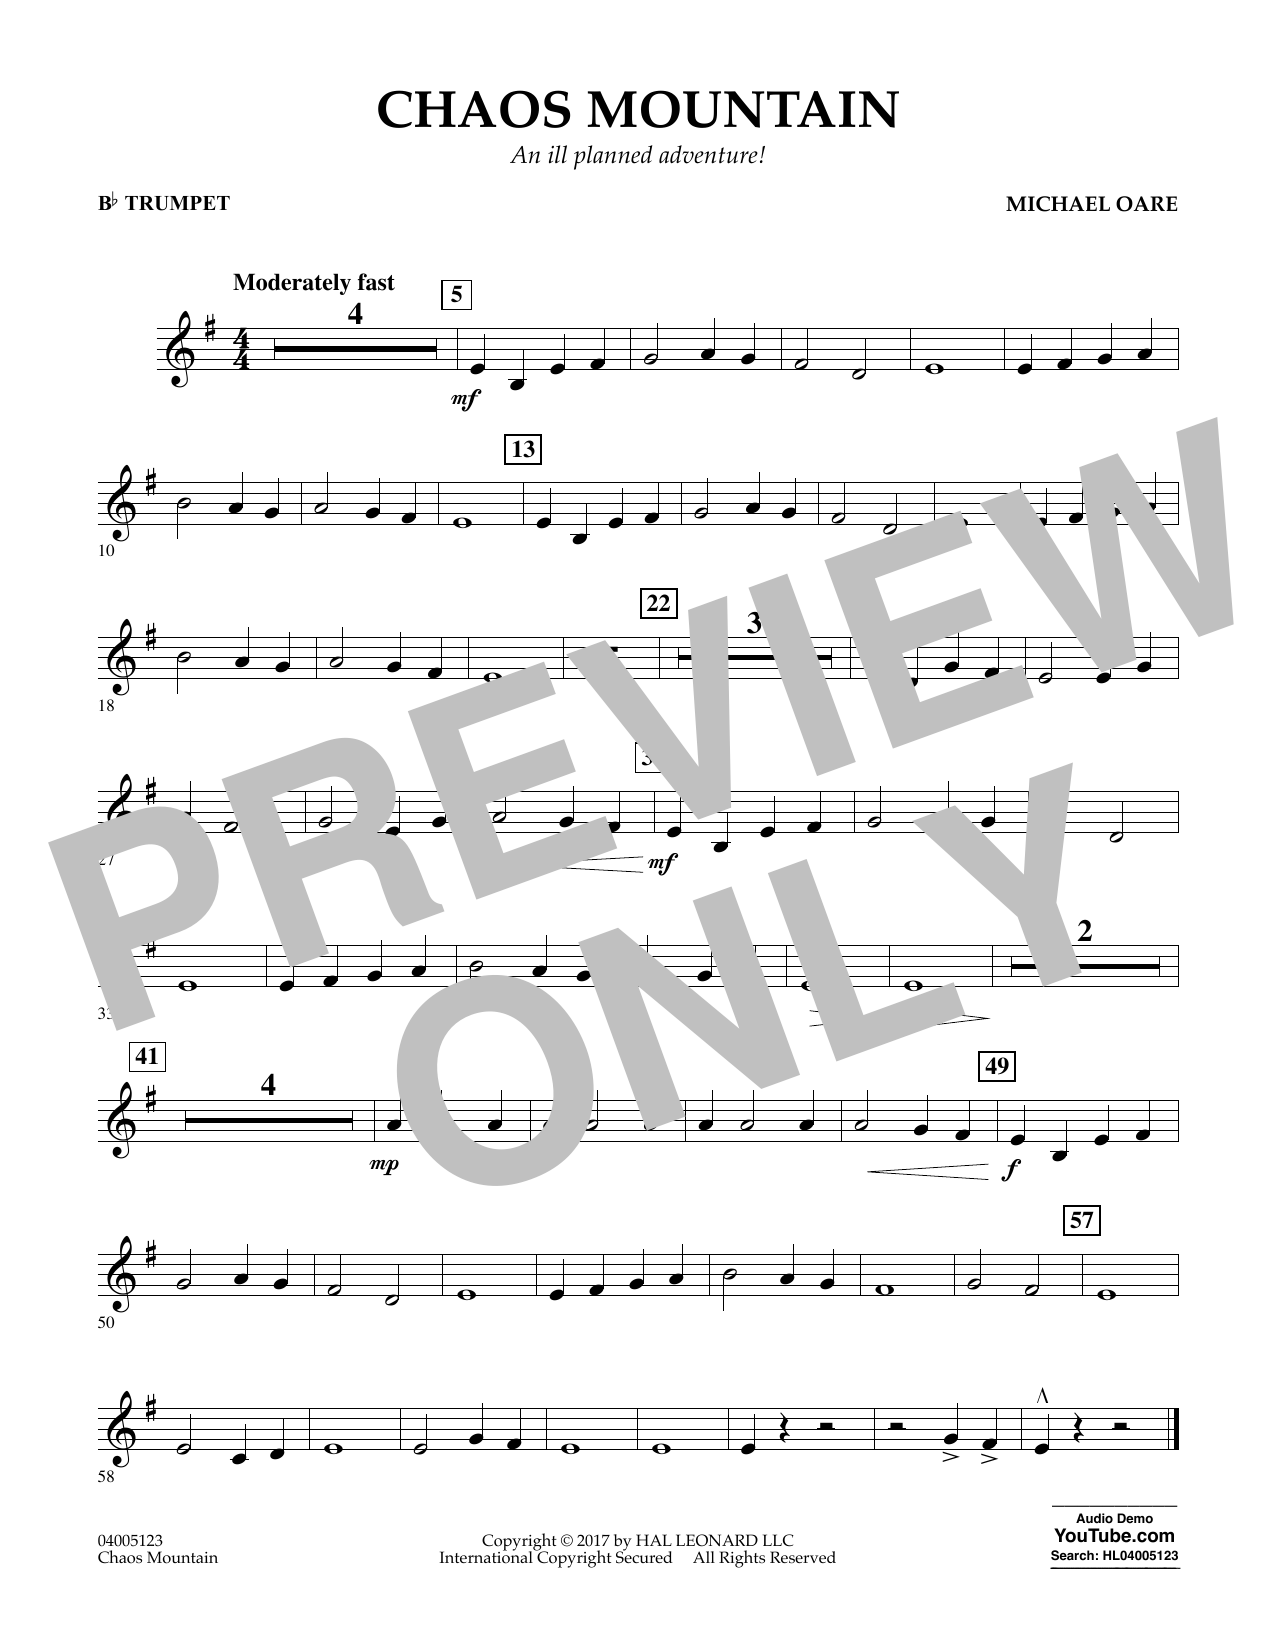 Michael Oare Chaos Mountain - Bb Trumpet sheet music notes and chords. Download Printable PDF.